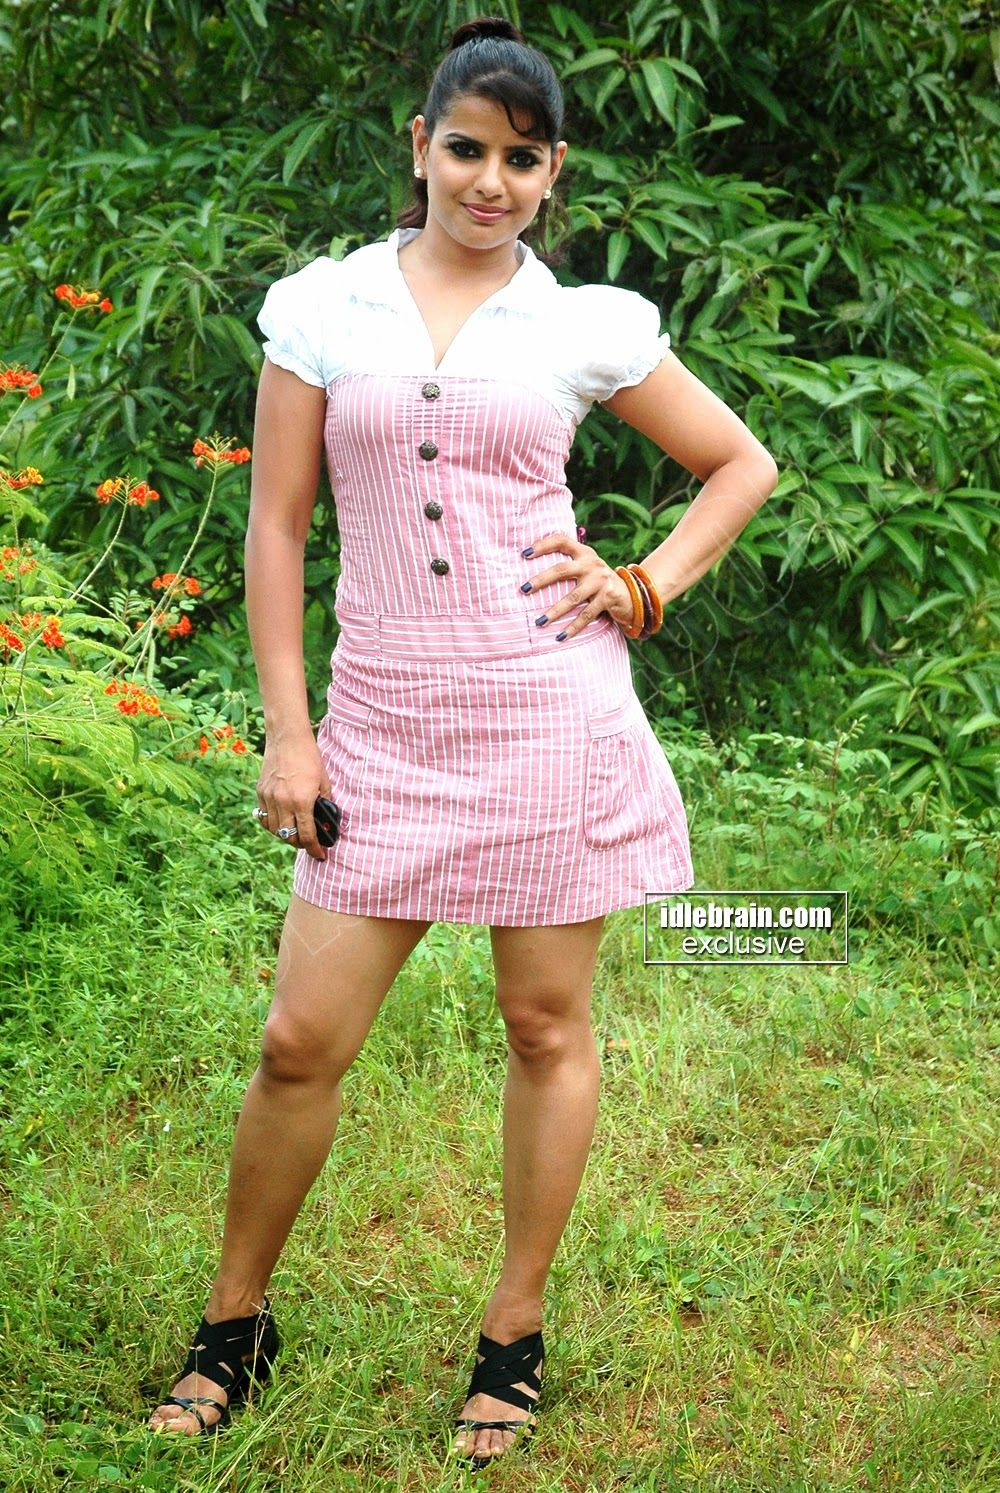 Madhu Shalini Nude Photos Good madhusharam | frock and mini skirt, the best dress of indian